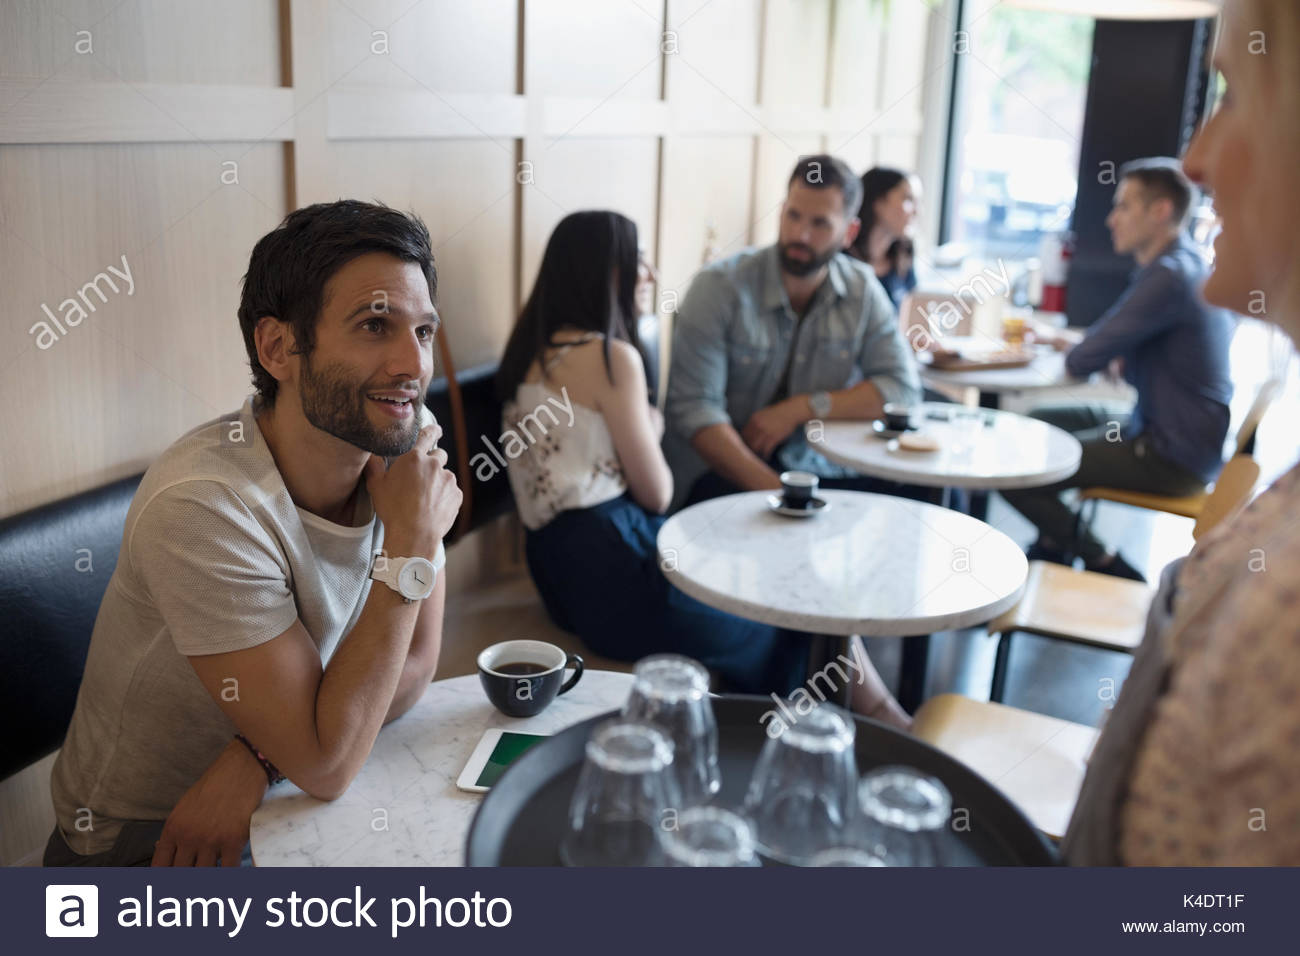 Male customer talking to waitress in cafe - Stock Image